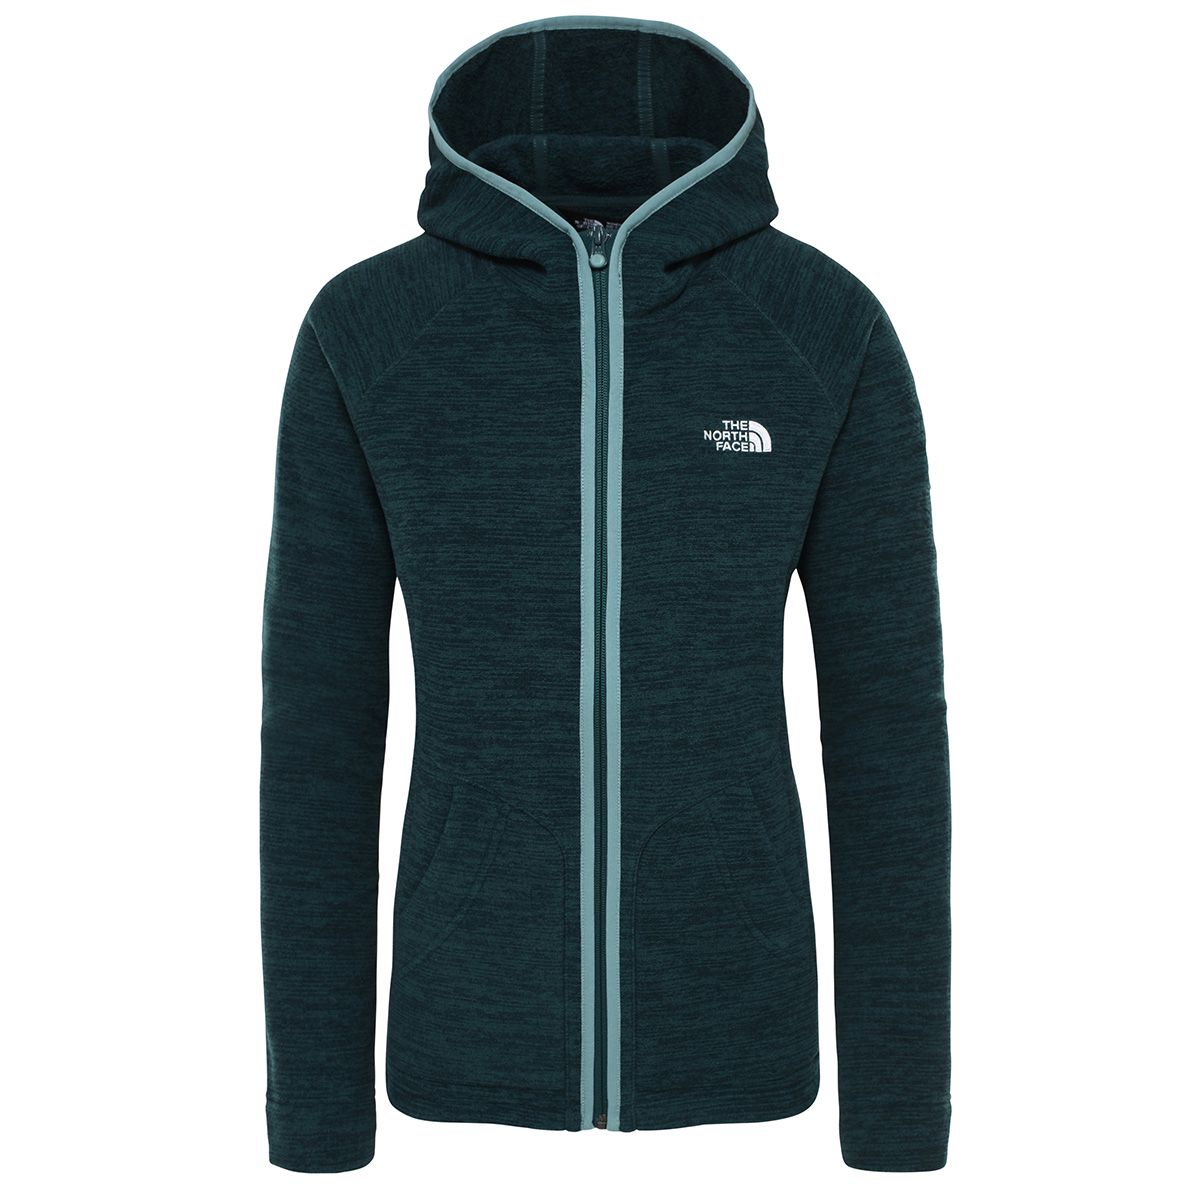 The North Face Damen Nikster Hoodie Jacke (Größe XS, Grün) | Fleecejacken > Damen